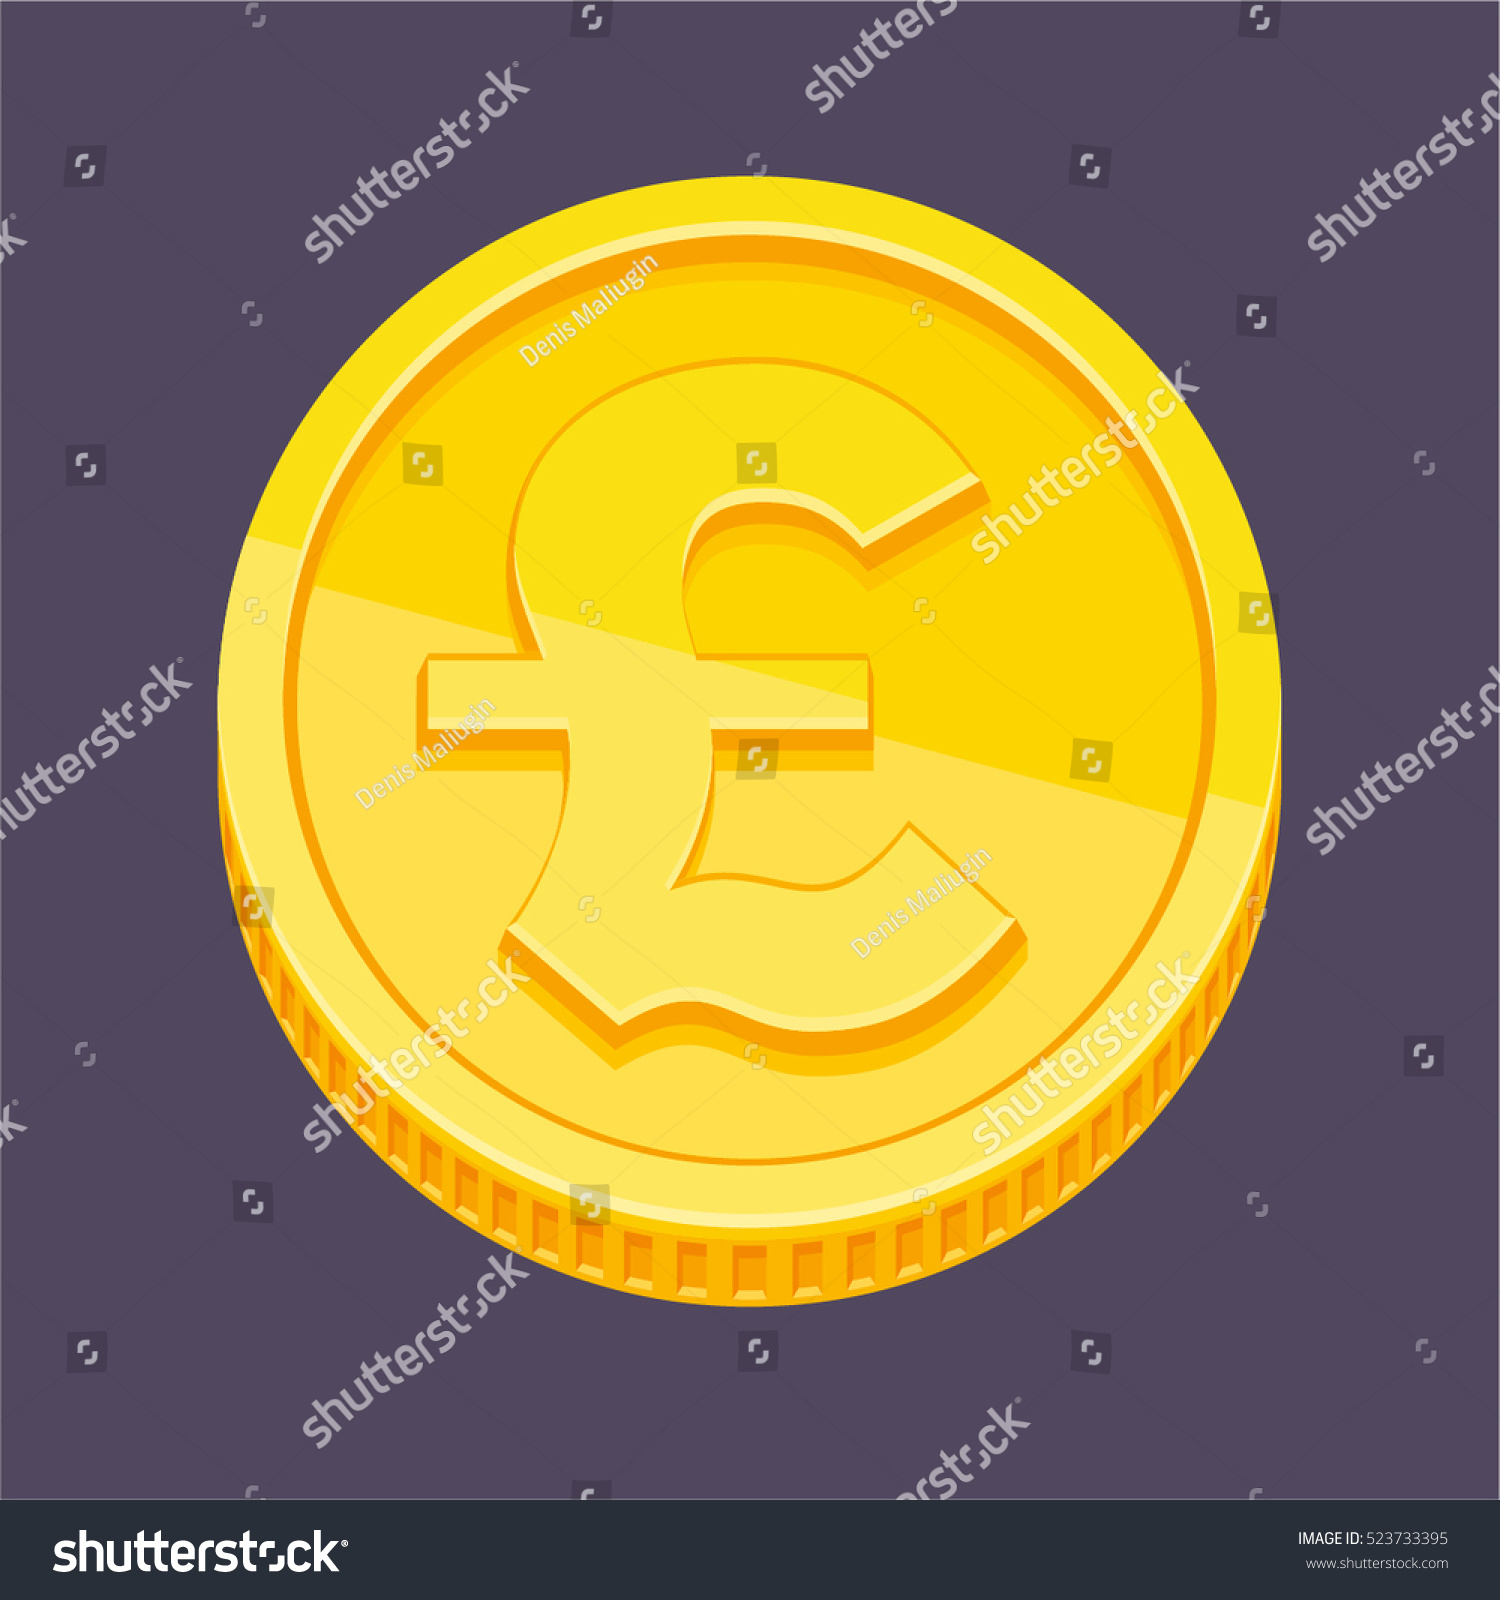 Currency symbol british pound sterling symbol stock vector 523733395 currency symbol british pound sterling symbol on gold coin vector illustration biocorpaavc Gallery